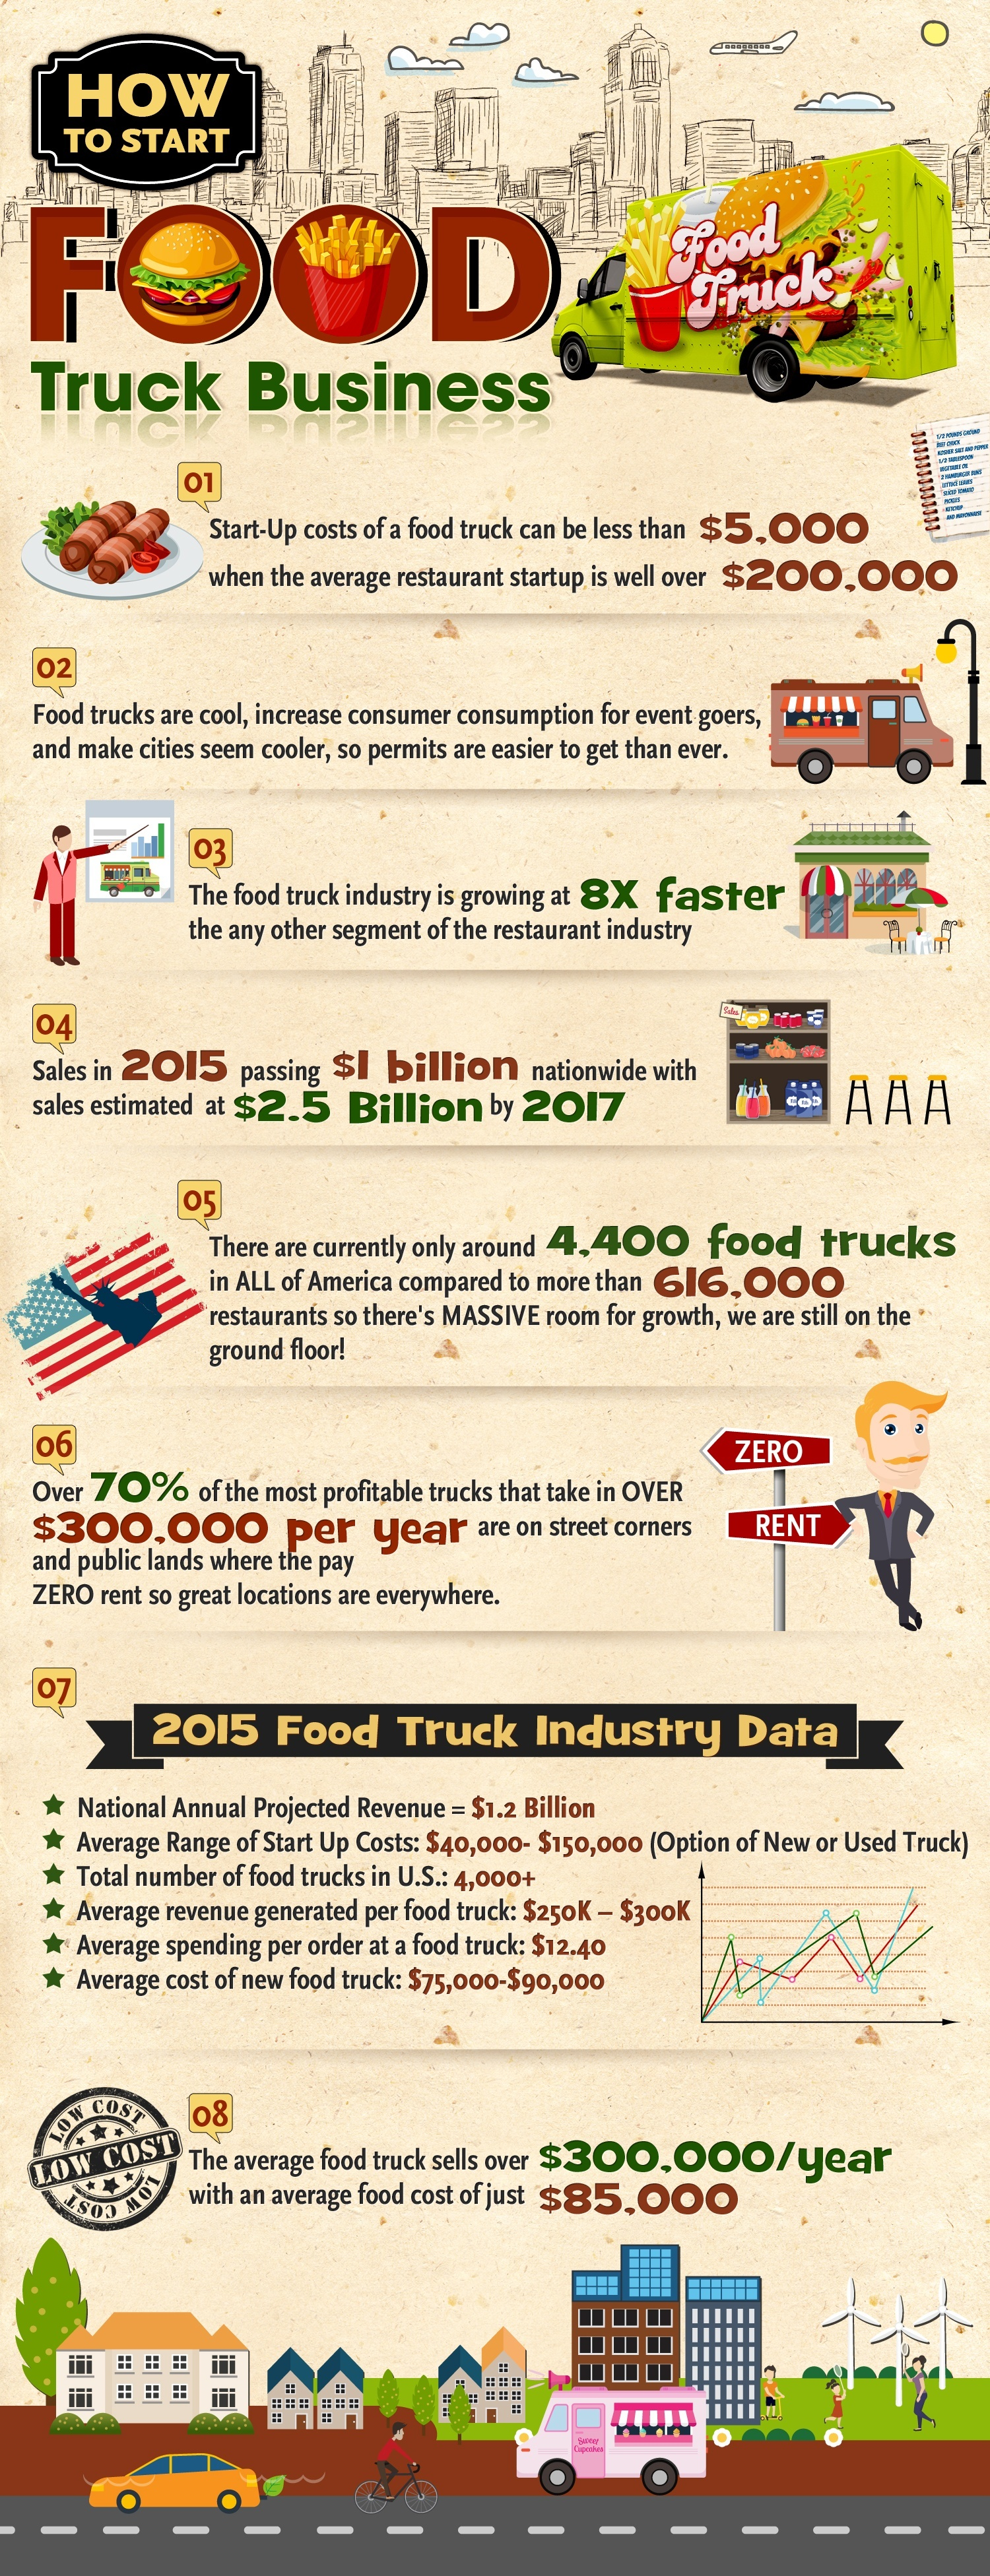 How To Start A Food Truck Business Infographic